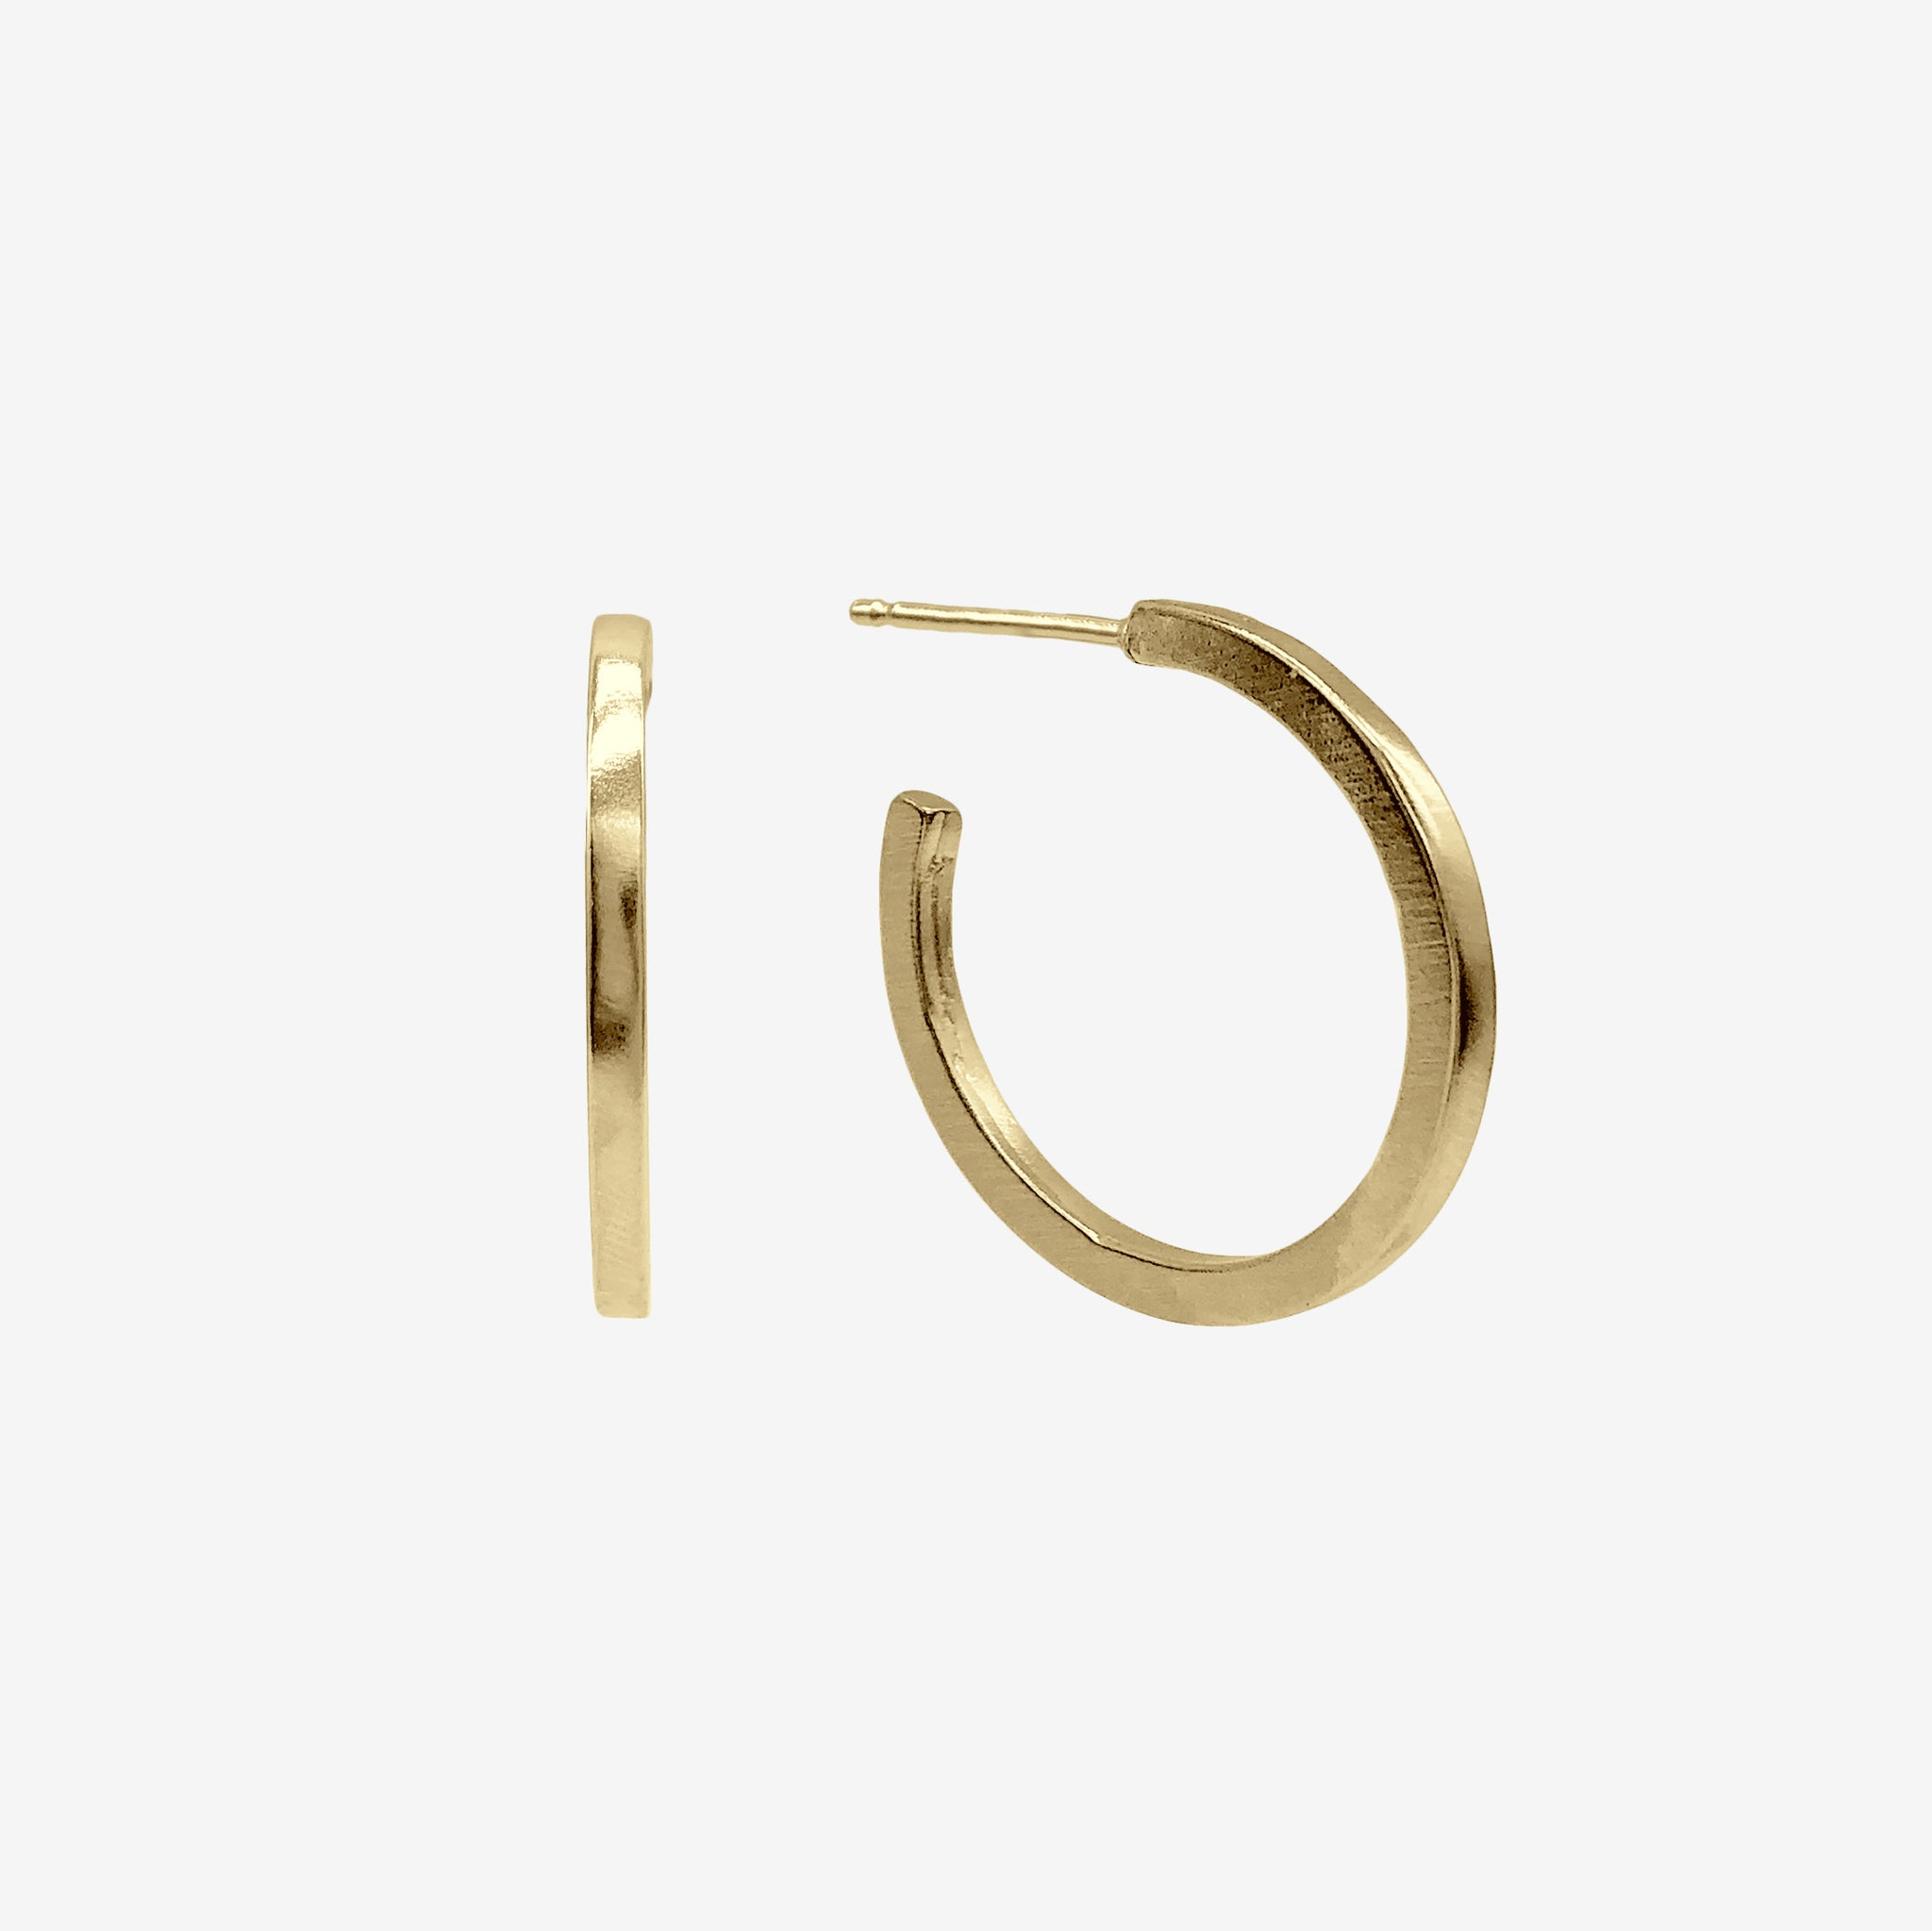 14k Gold Vermeil Joy Hoop Earring crafted by women transitioning out of homelessness using 100% recycled metals